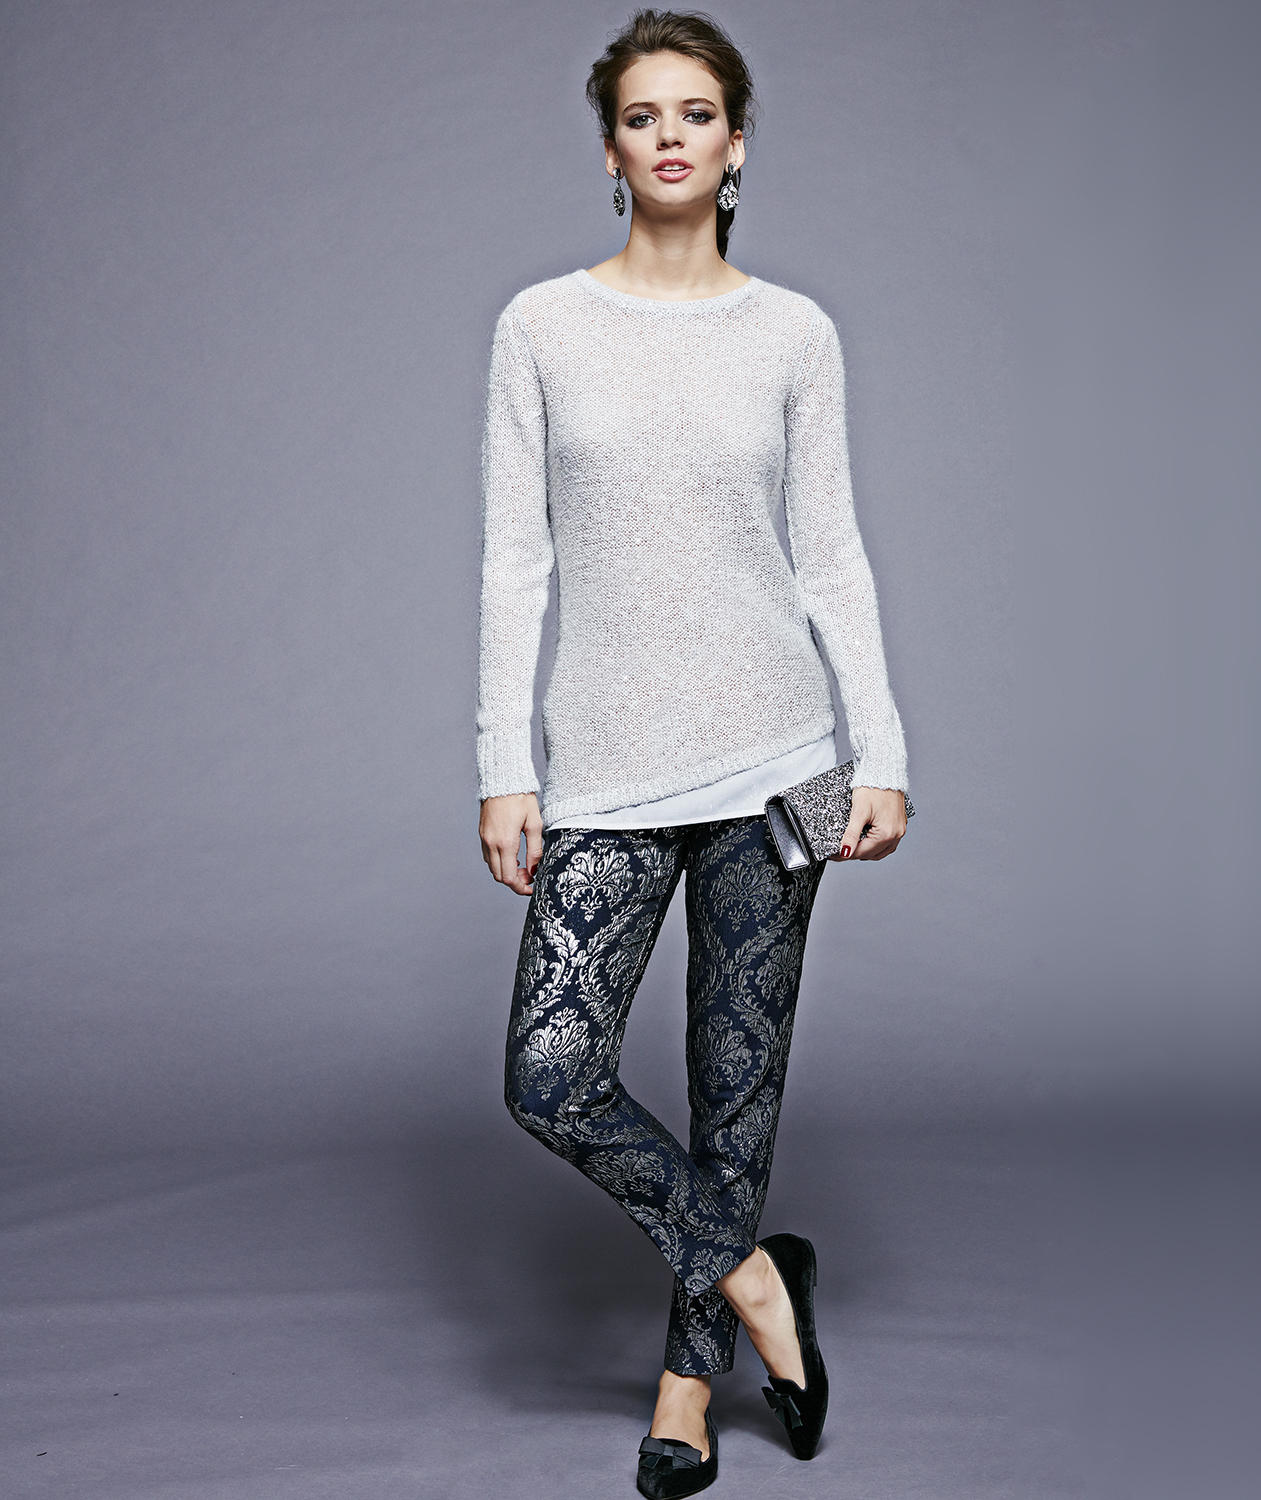 Model with gray sweater and metallic patterned pants